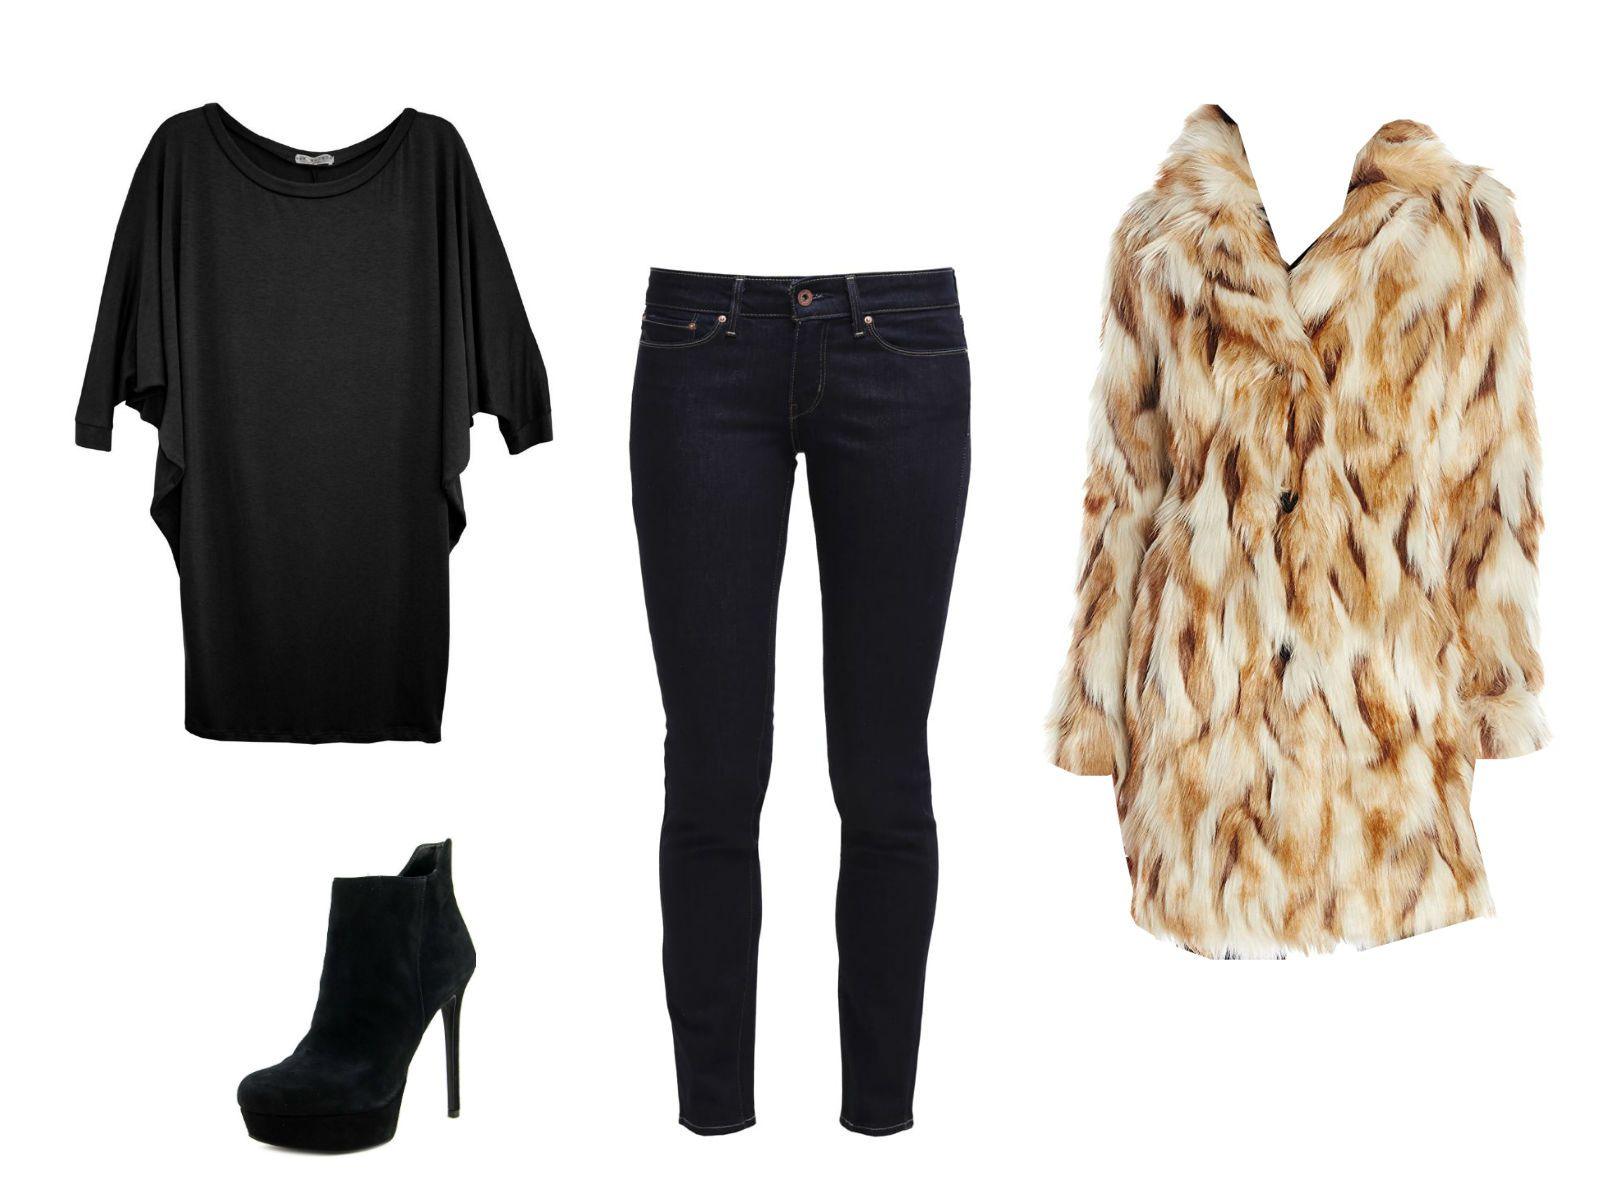 Winter date outfit with jeans